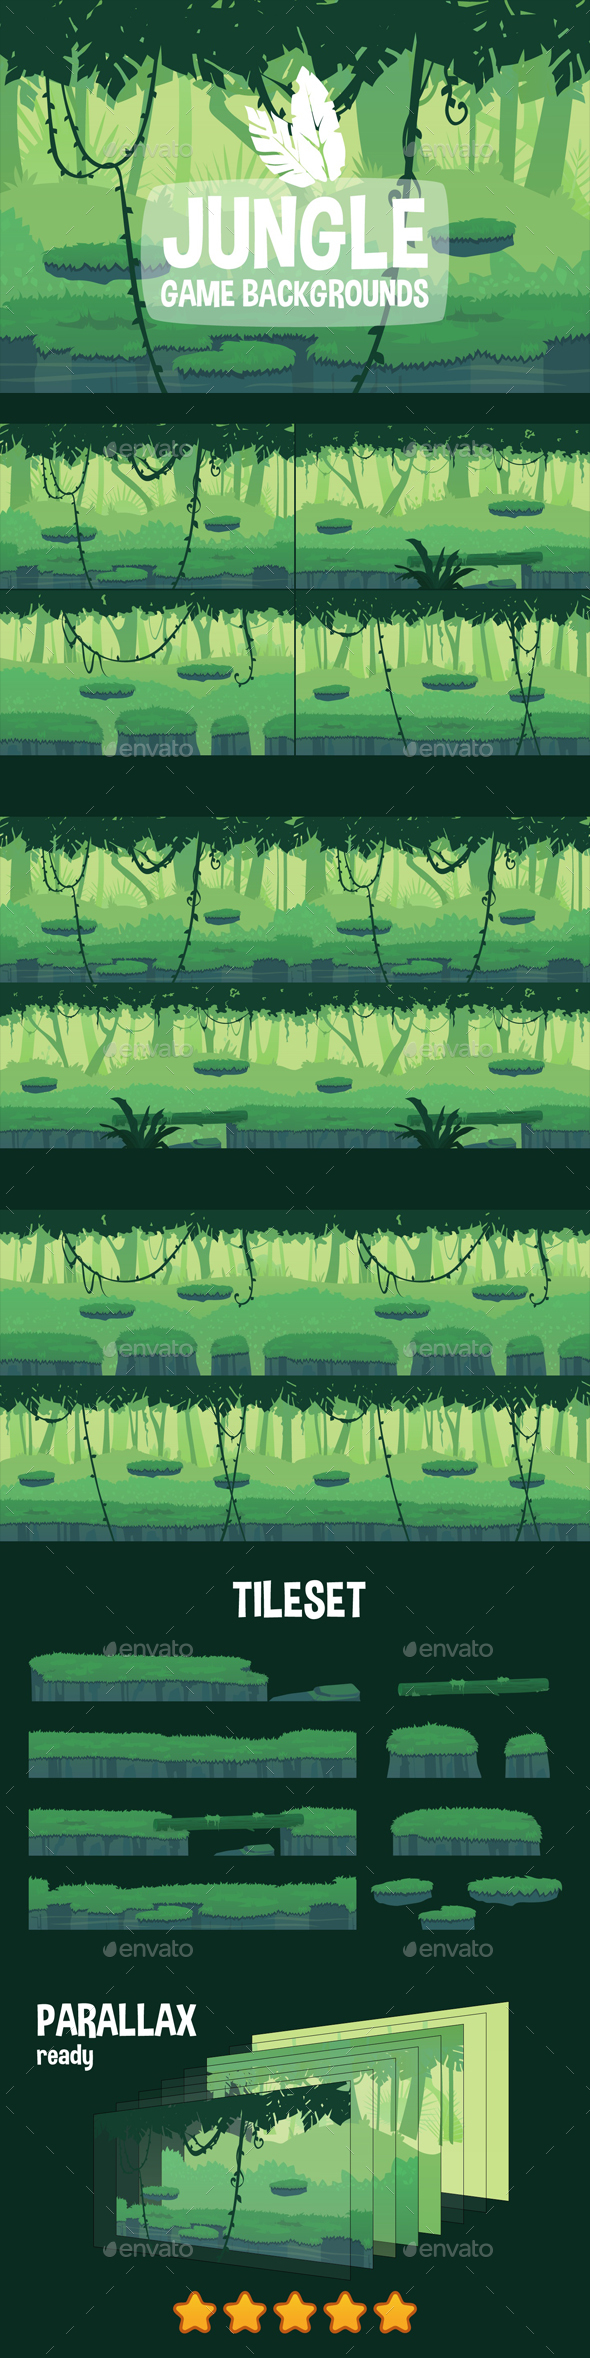 Parallax Jungle 2D Backgrounds - Backgrounds Game Assets